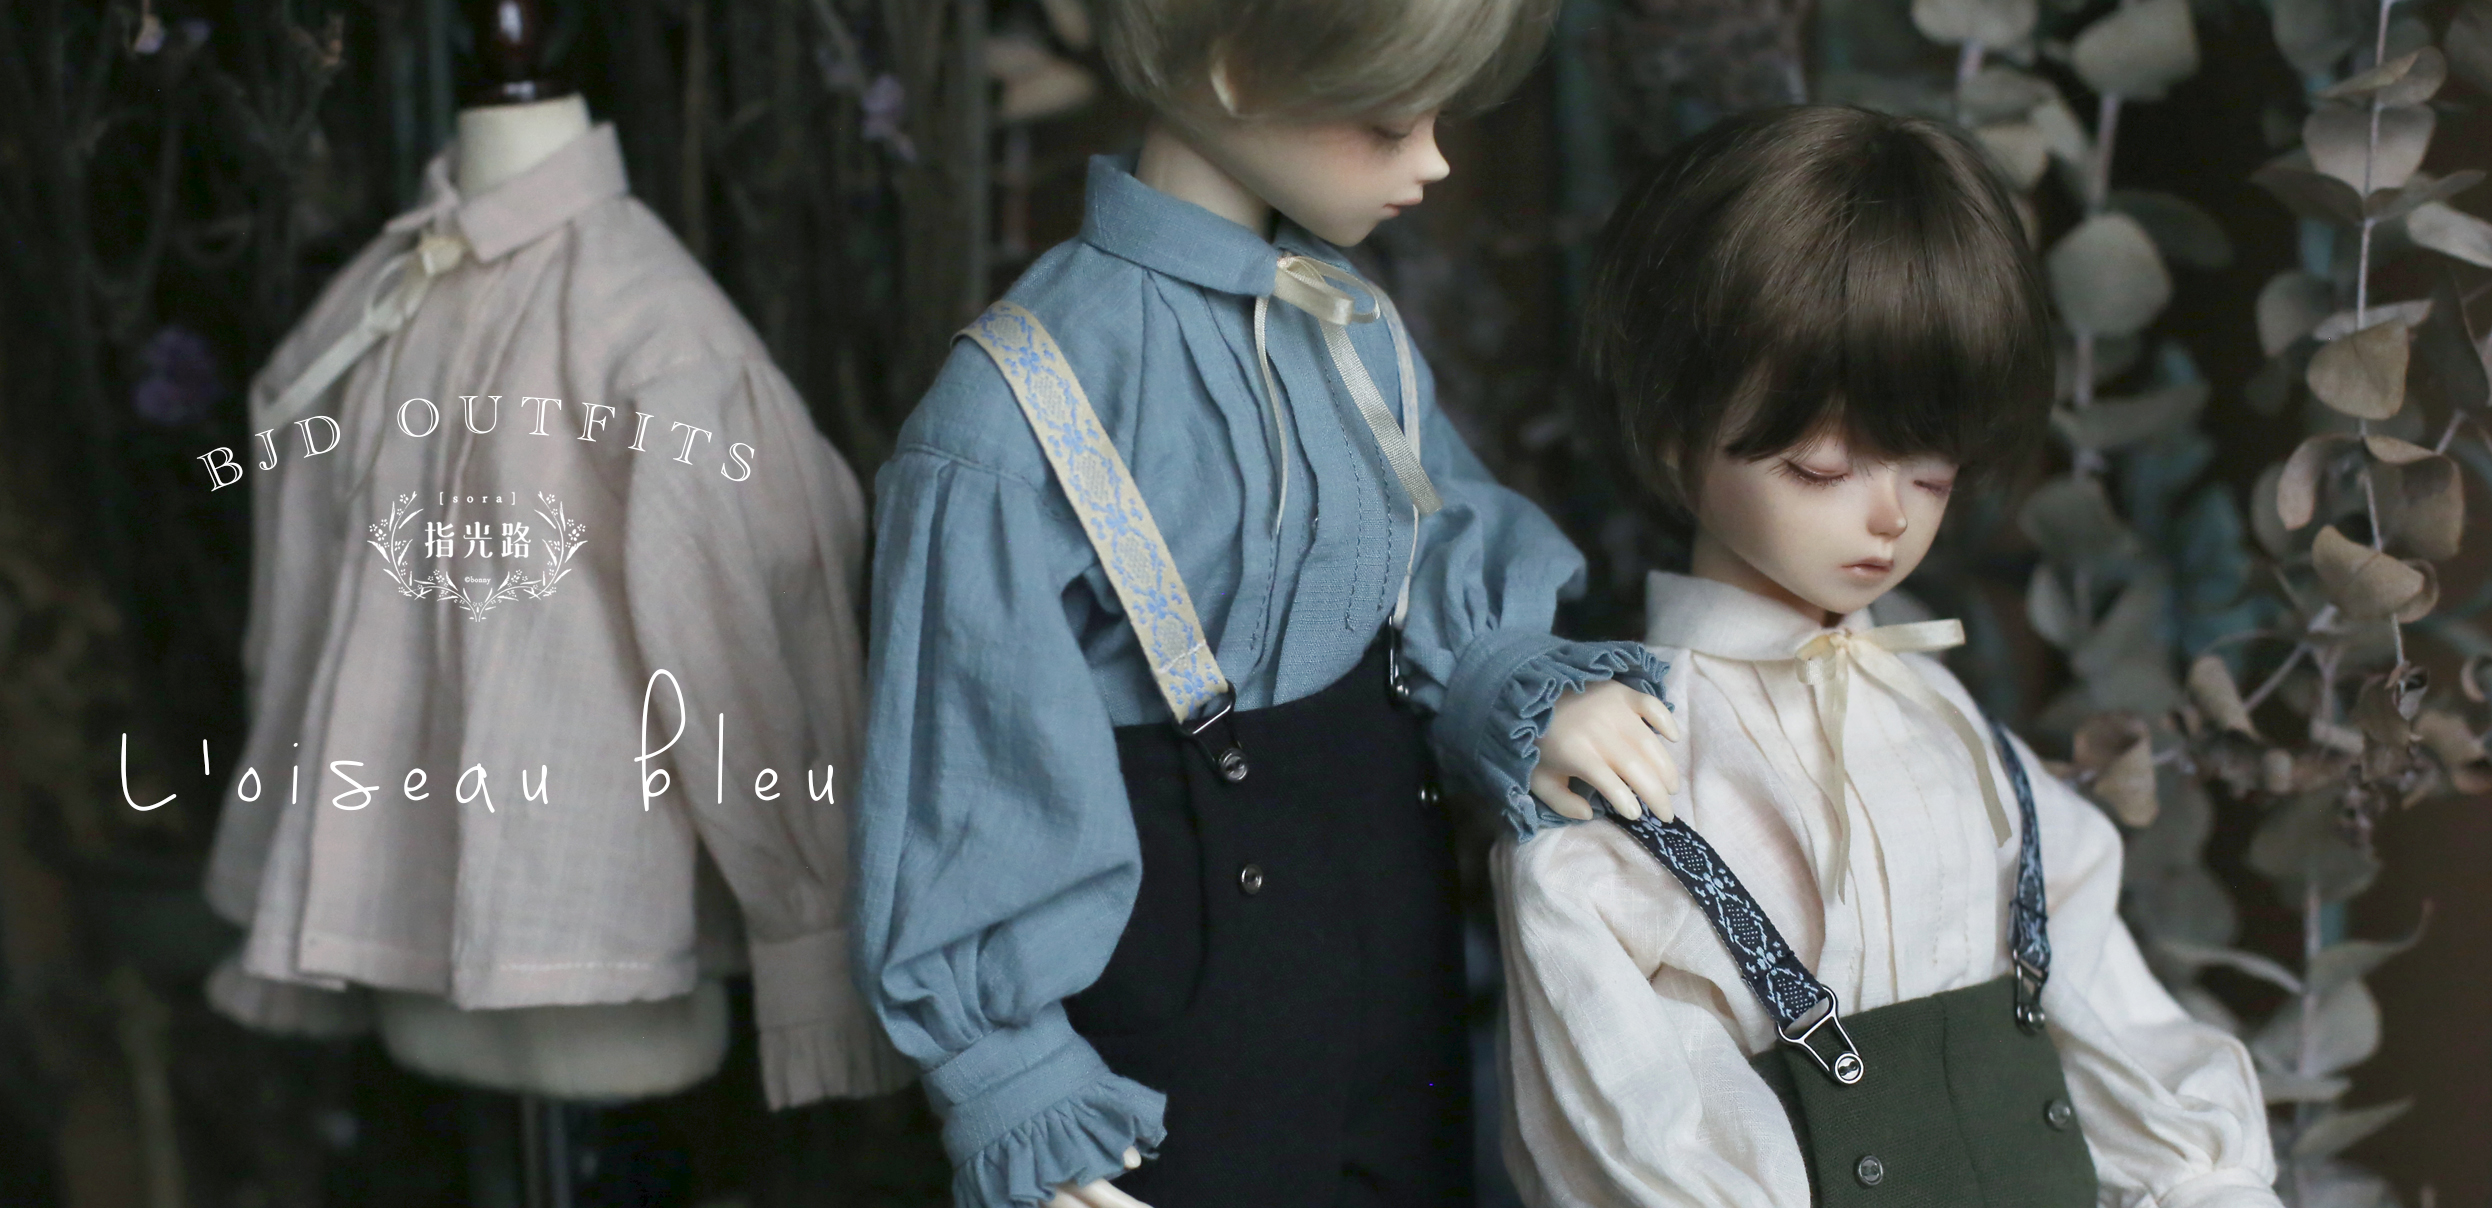 No74.L'oiseau bleu - Boy sets